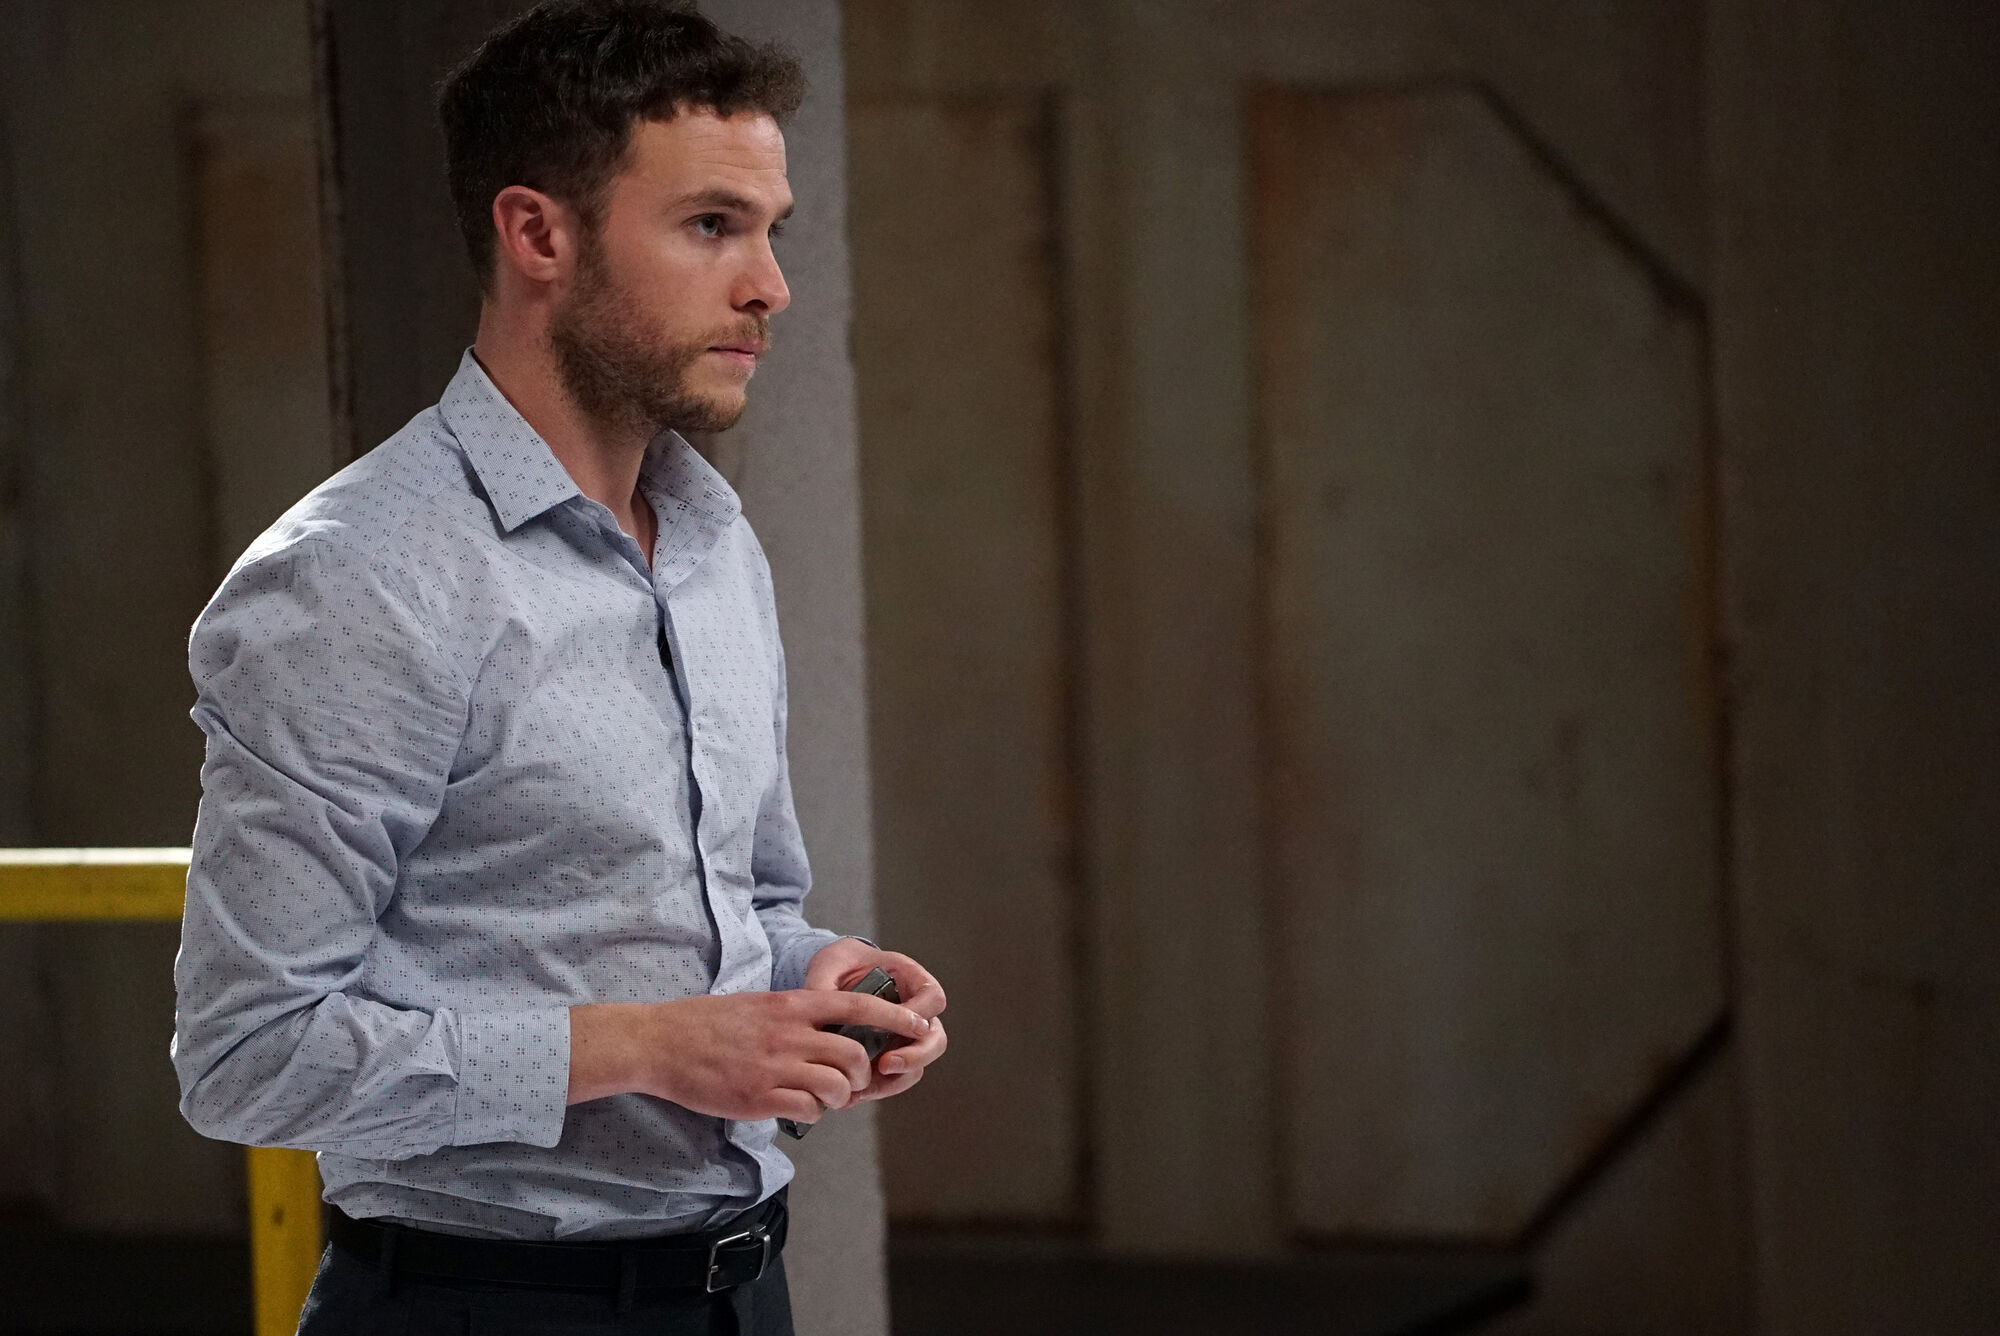 Leo Fitz/Quote | Marvel Cinematic Universe Wiki | FANDOM powered by